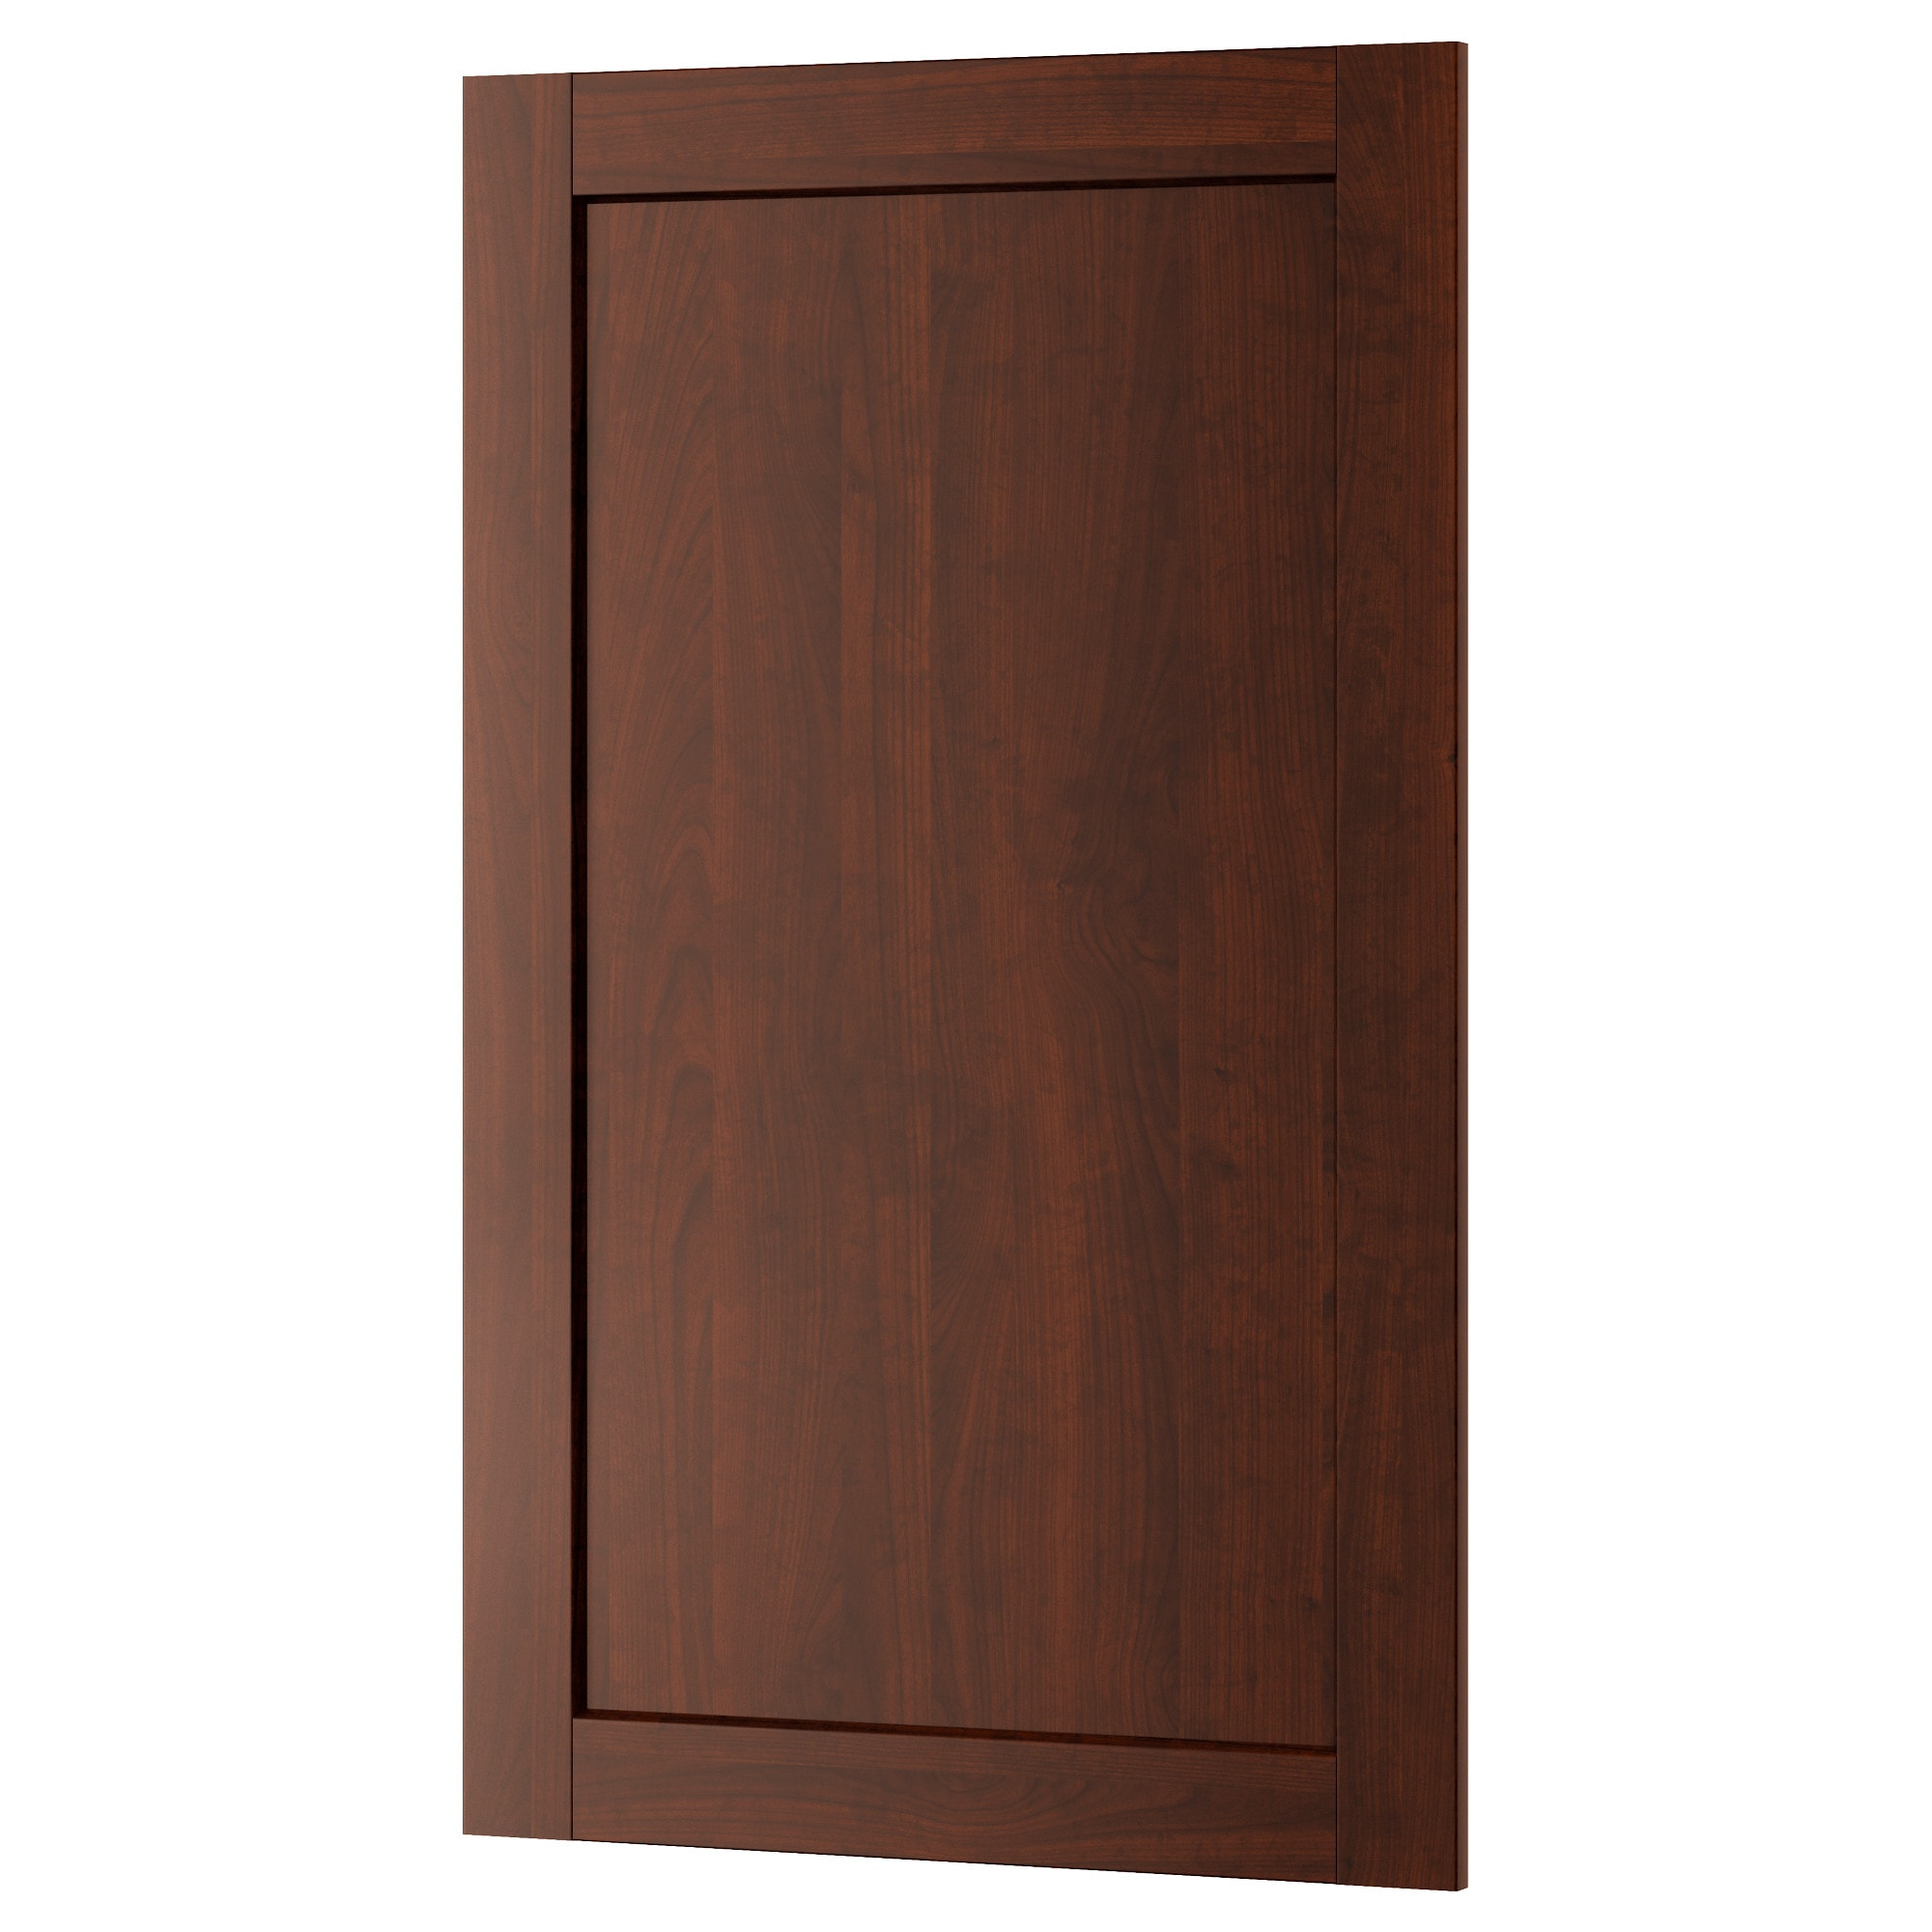 "EDSERUM Door 18x30 "" IKEA"